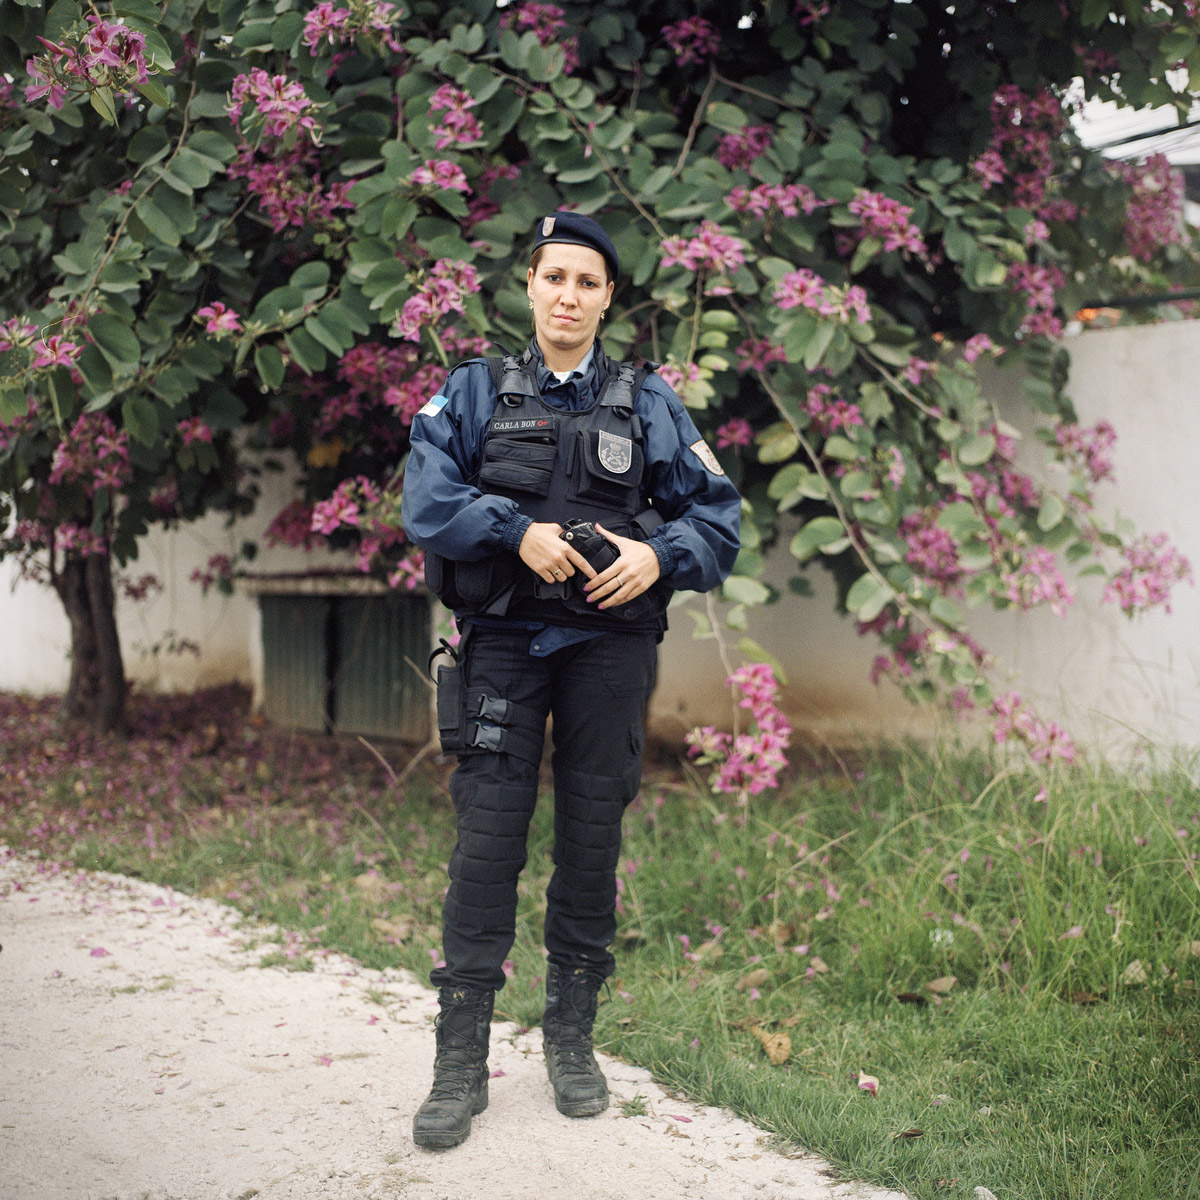 Patrol Officer Carla Bonn, 33, with the Rapid Response Team of the Pacifying Police Unit (UPP), in Complexo do Caju, Rio de Janeiro, Brazil.